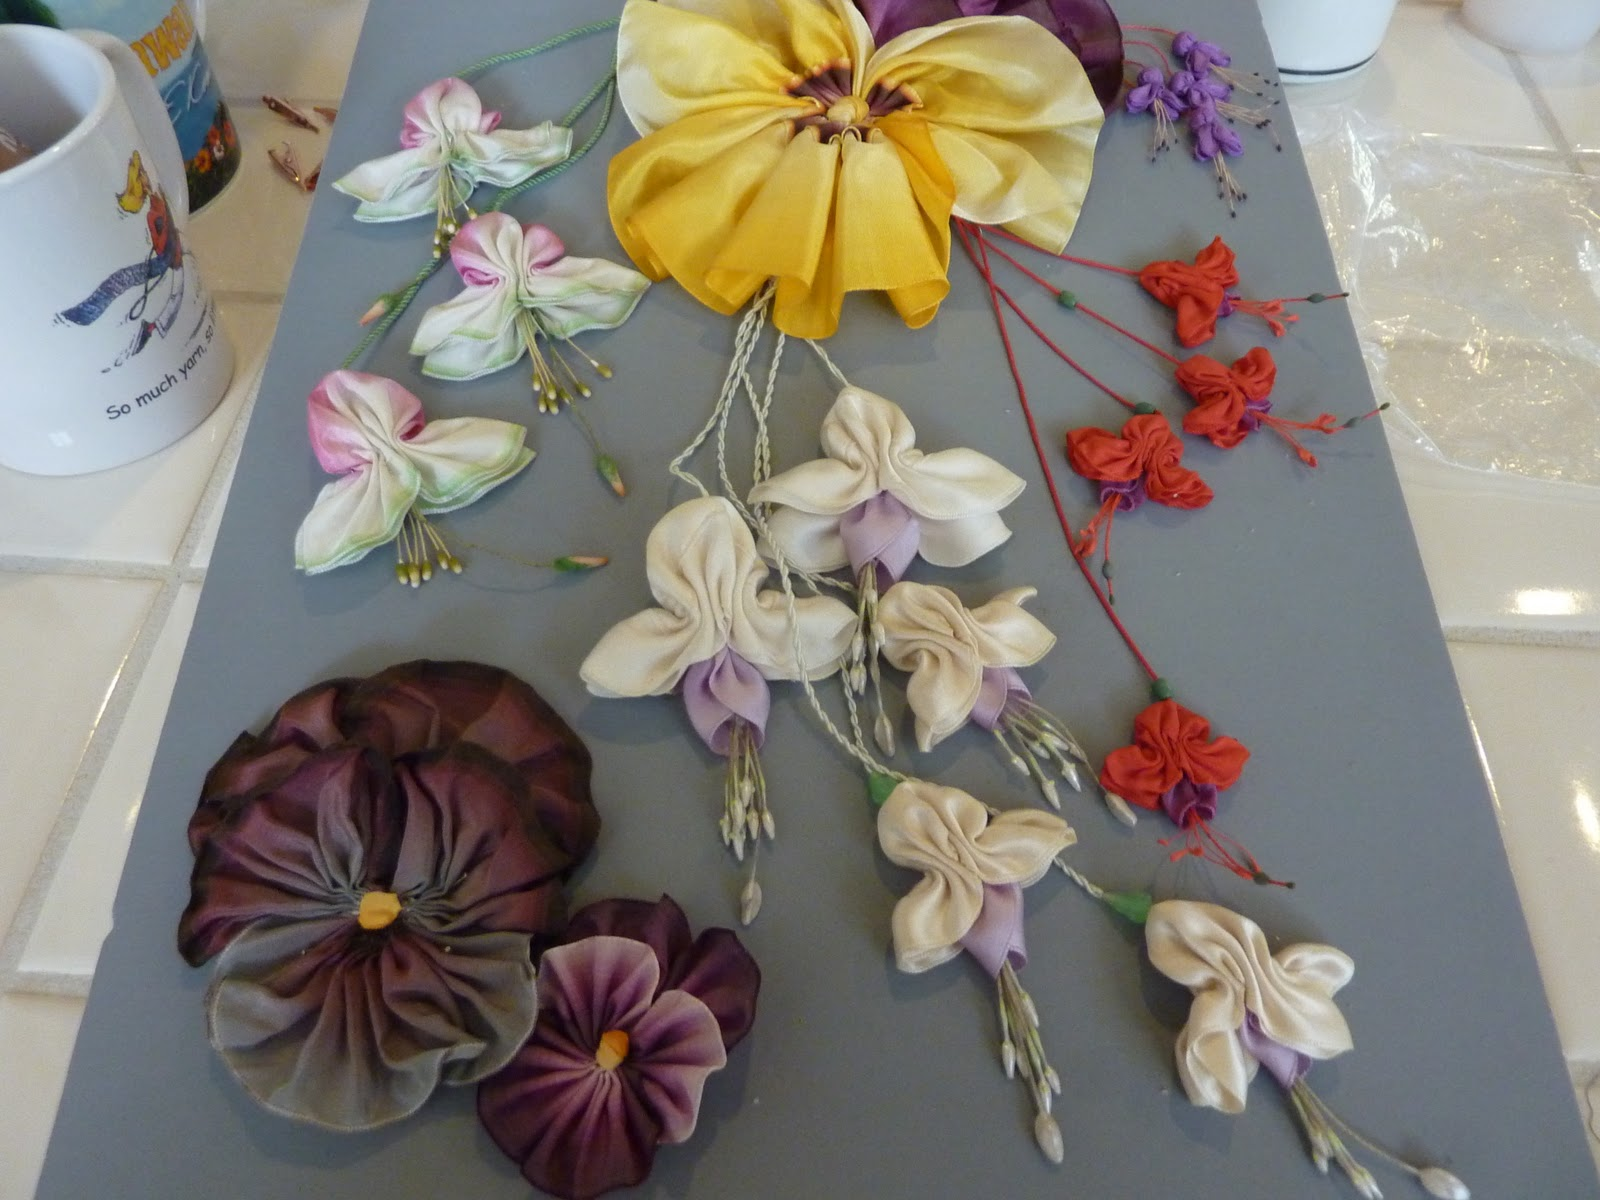 Artful play candace kling ribbon flower class yesterday i spent a wonderful day taking one of candace klings amazing ribbon flower classes we focused on fuchsias and pansies izmirmasajfo